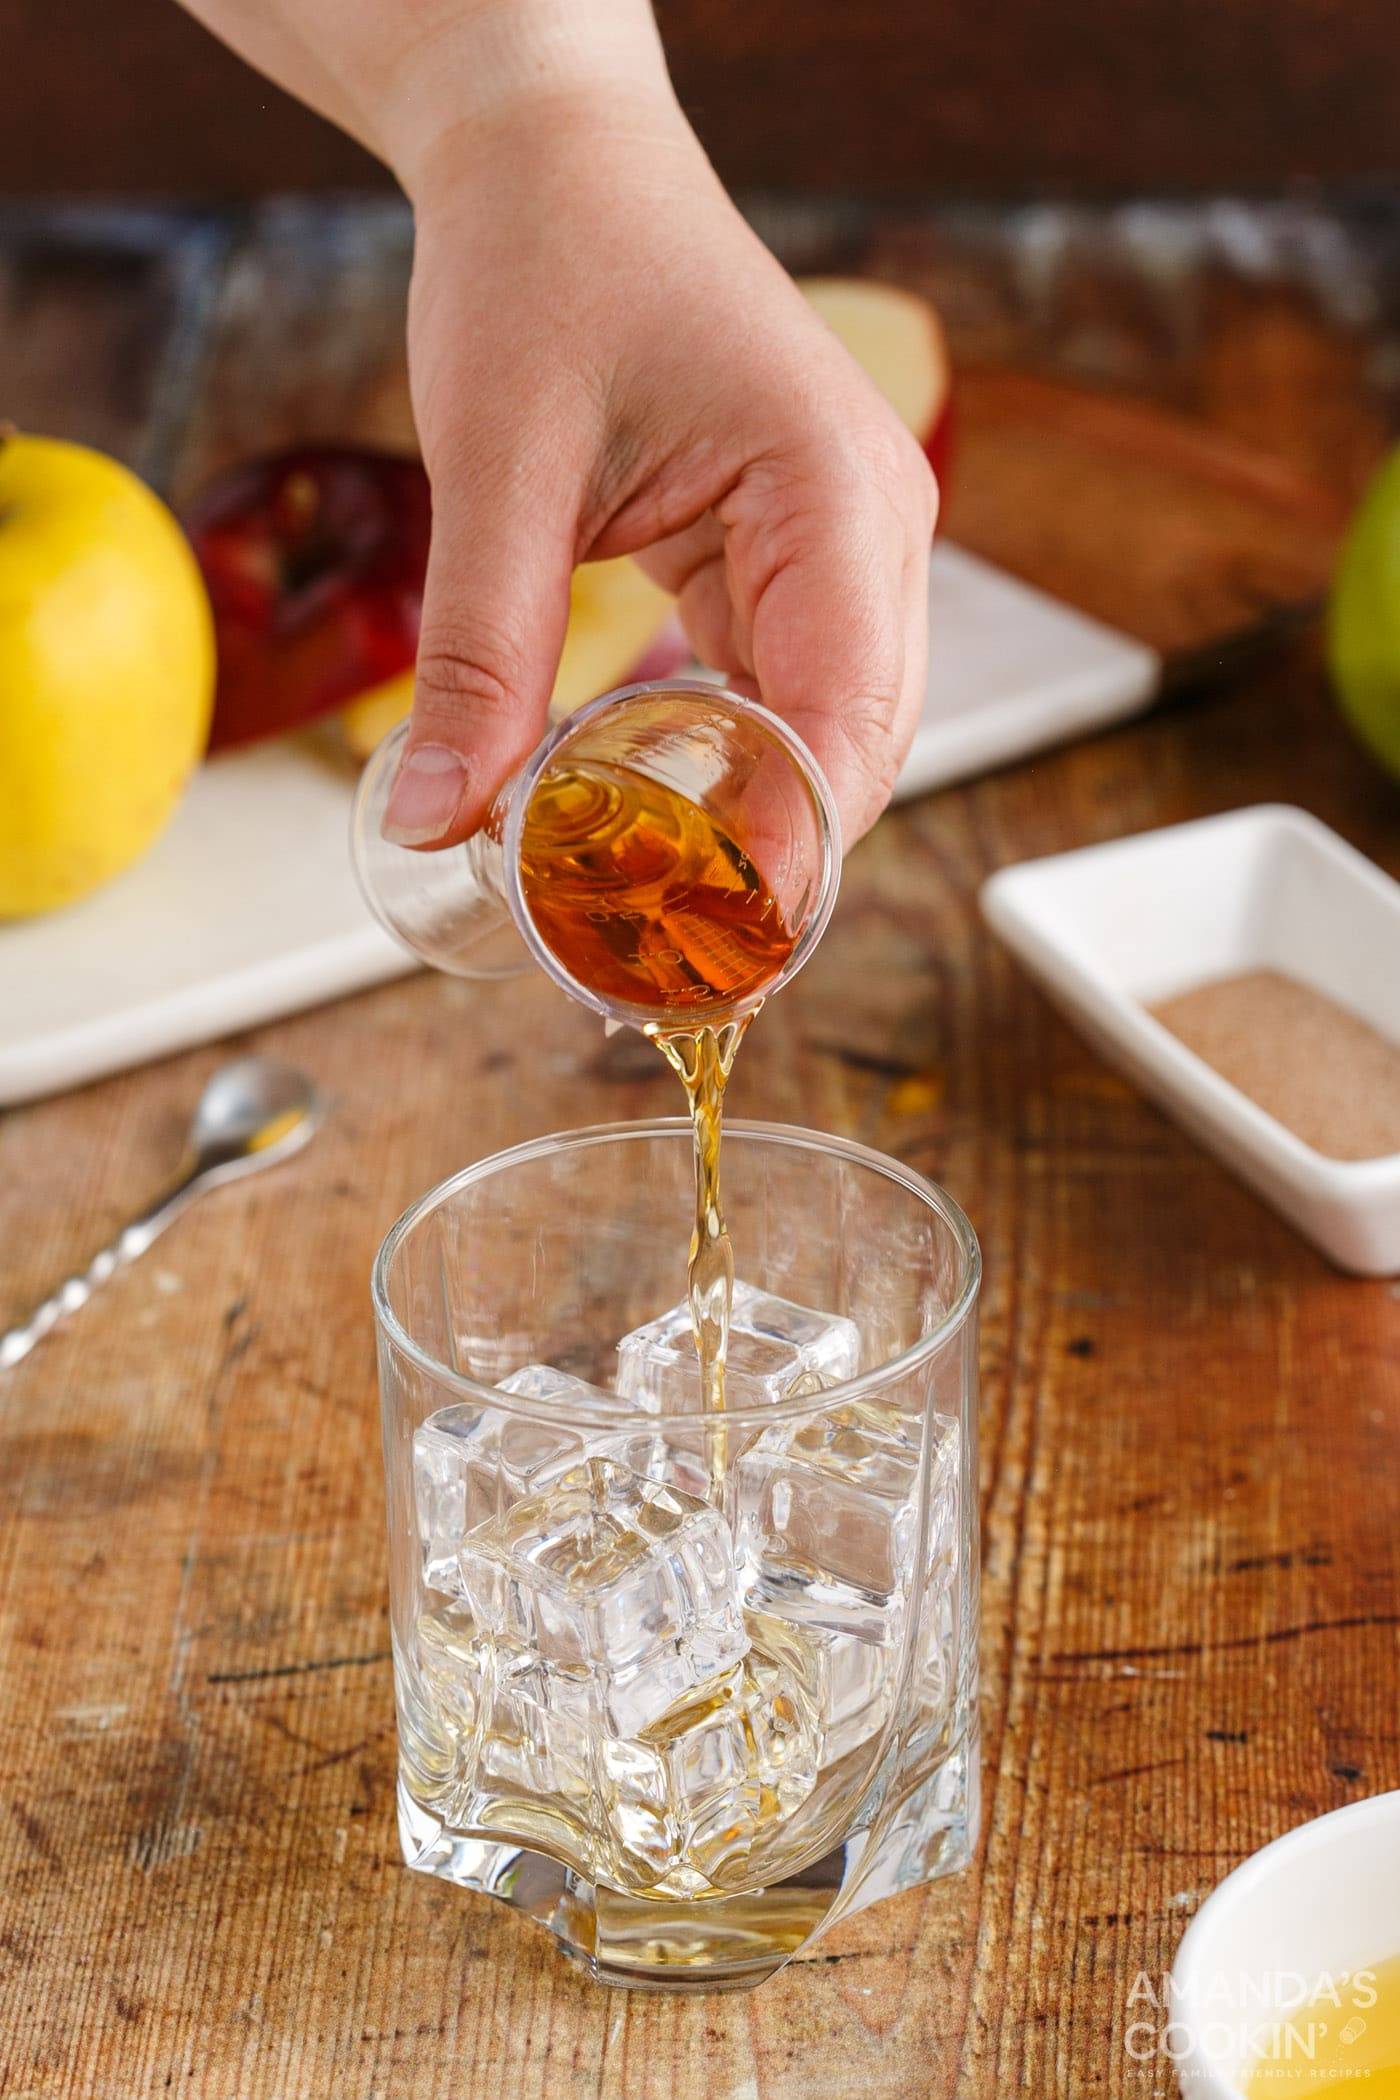 pouring fireball whiskey into a shot glass